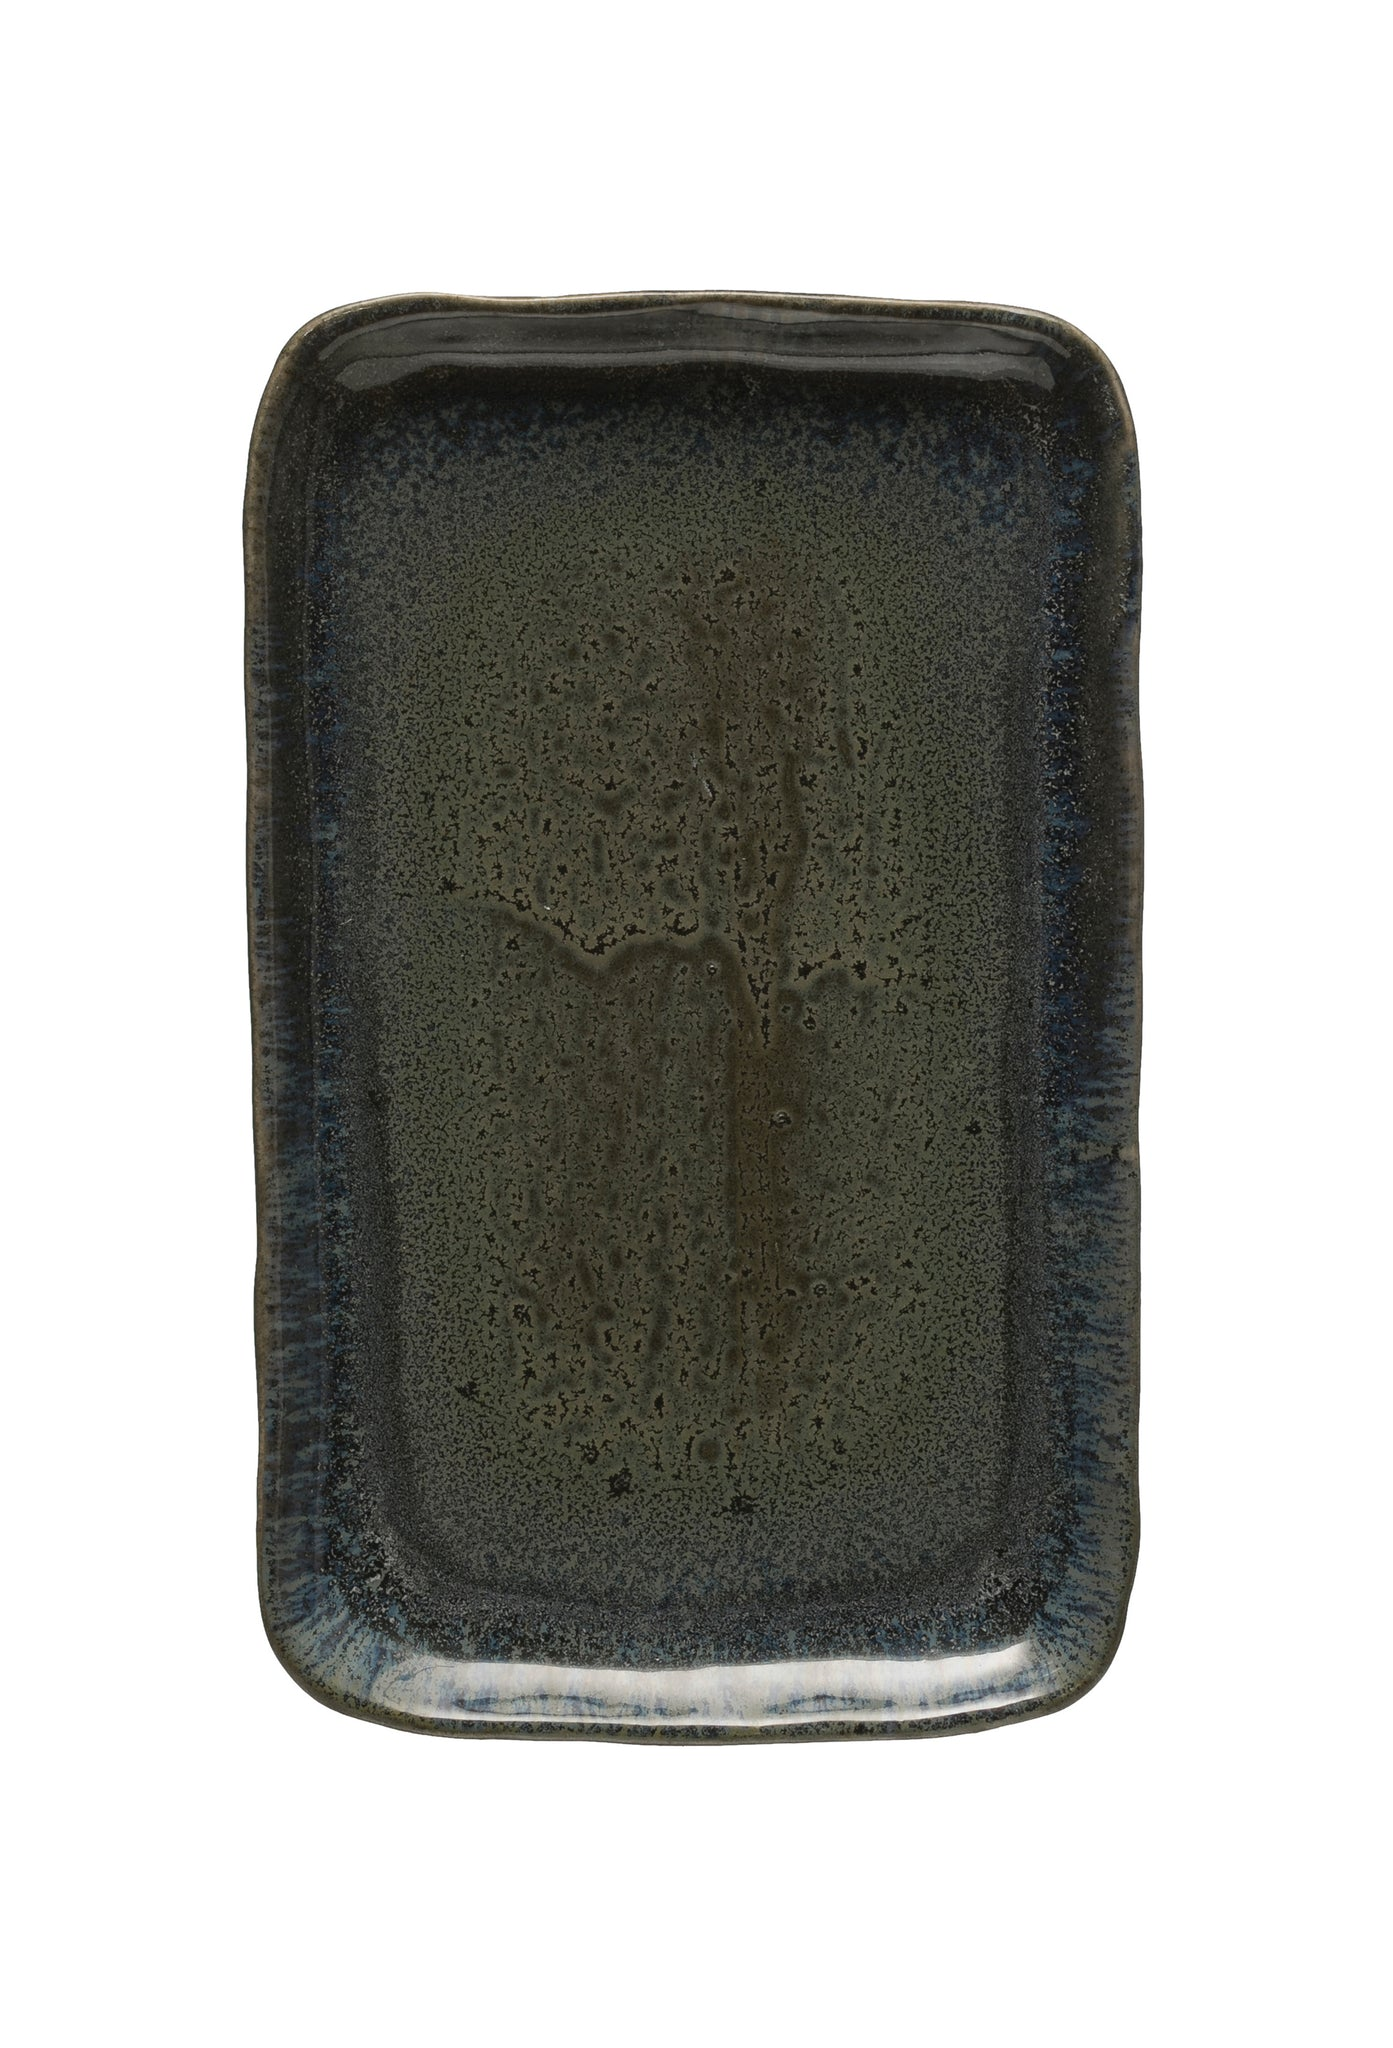 "12""L Rectangle Stoneware Serving Platter with Reactive Glaze Finish (Each one will vary)"